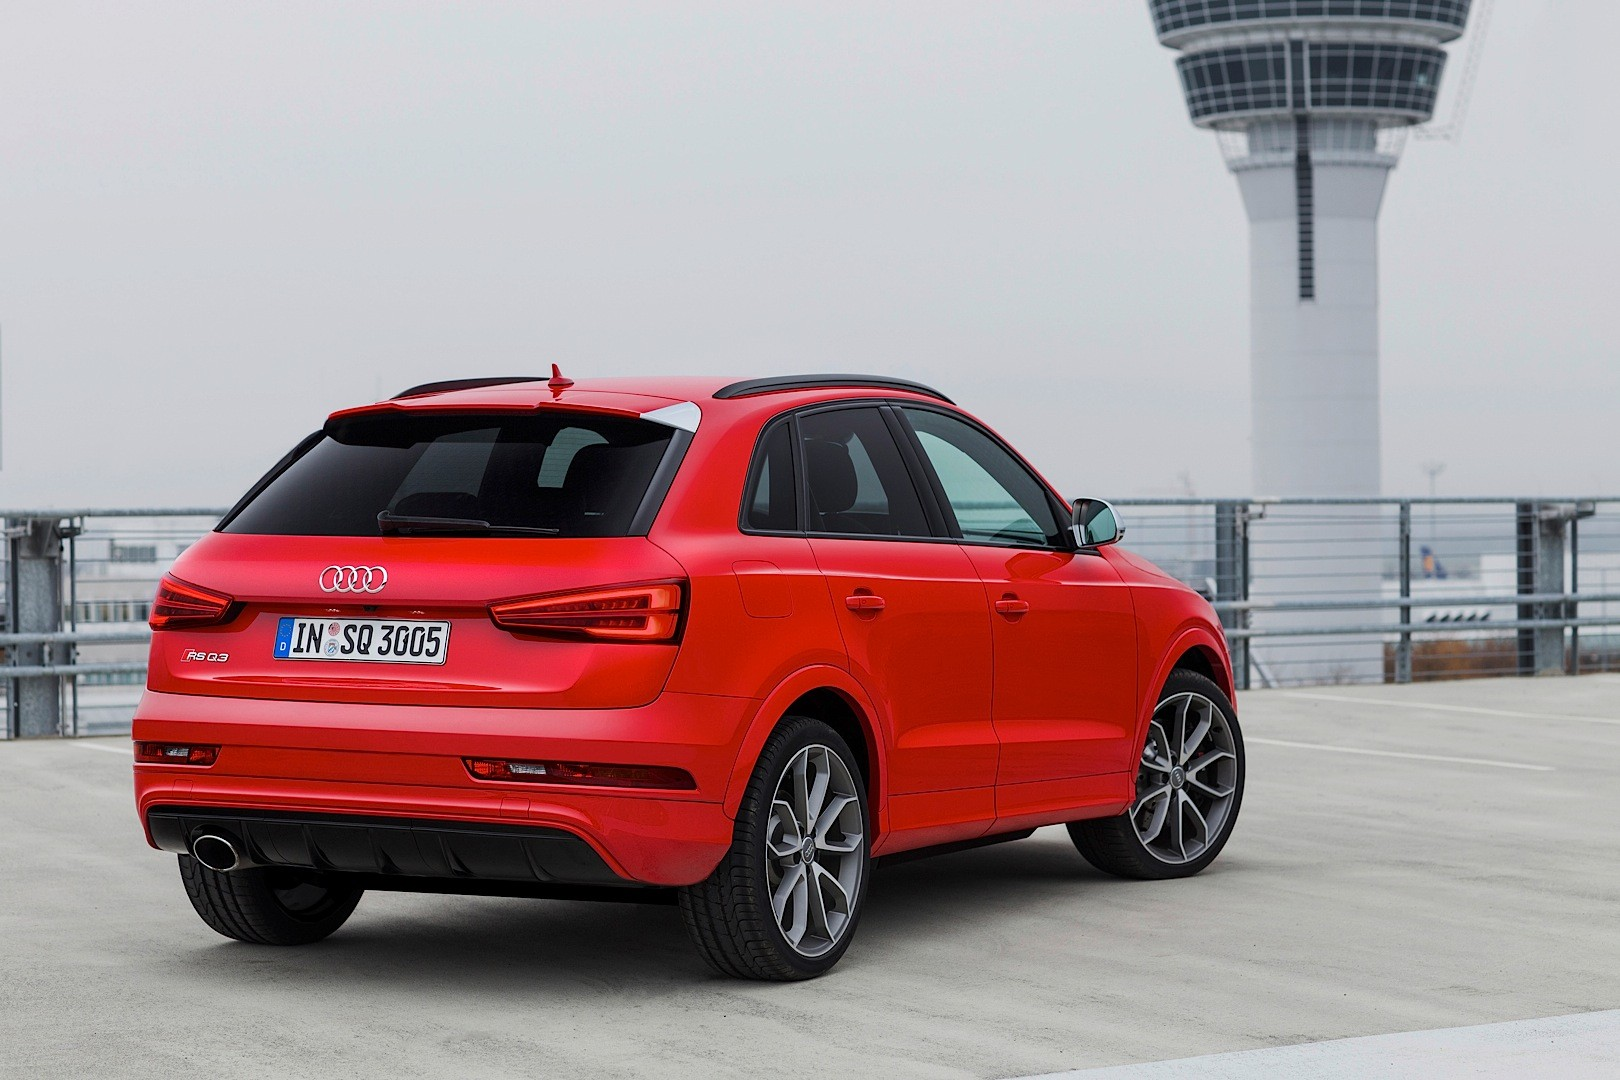 audi shares new 2015 q3 and rs q3 photos fresh colors. Black Bedroom Furniture Sets. Home Design Ideas